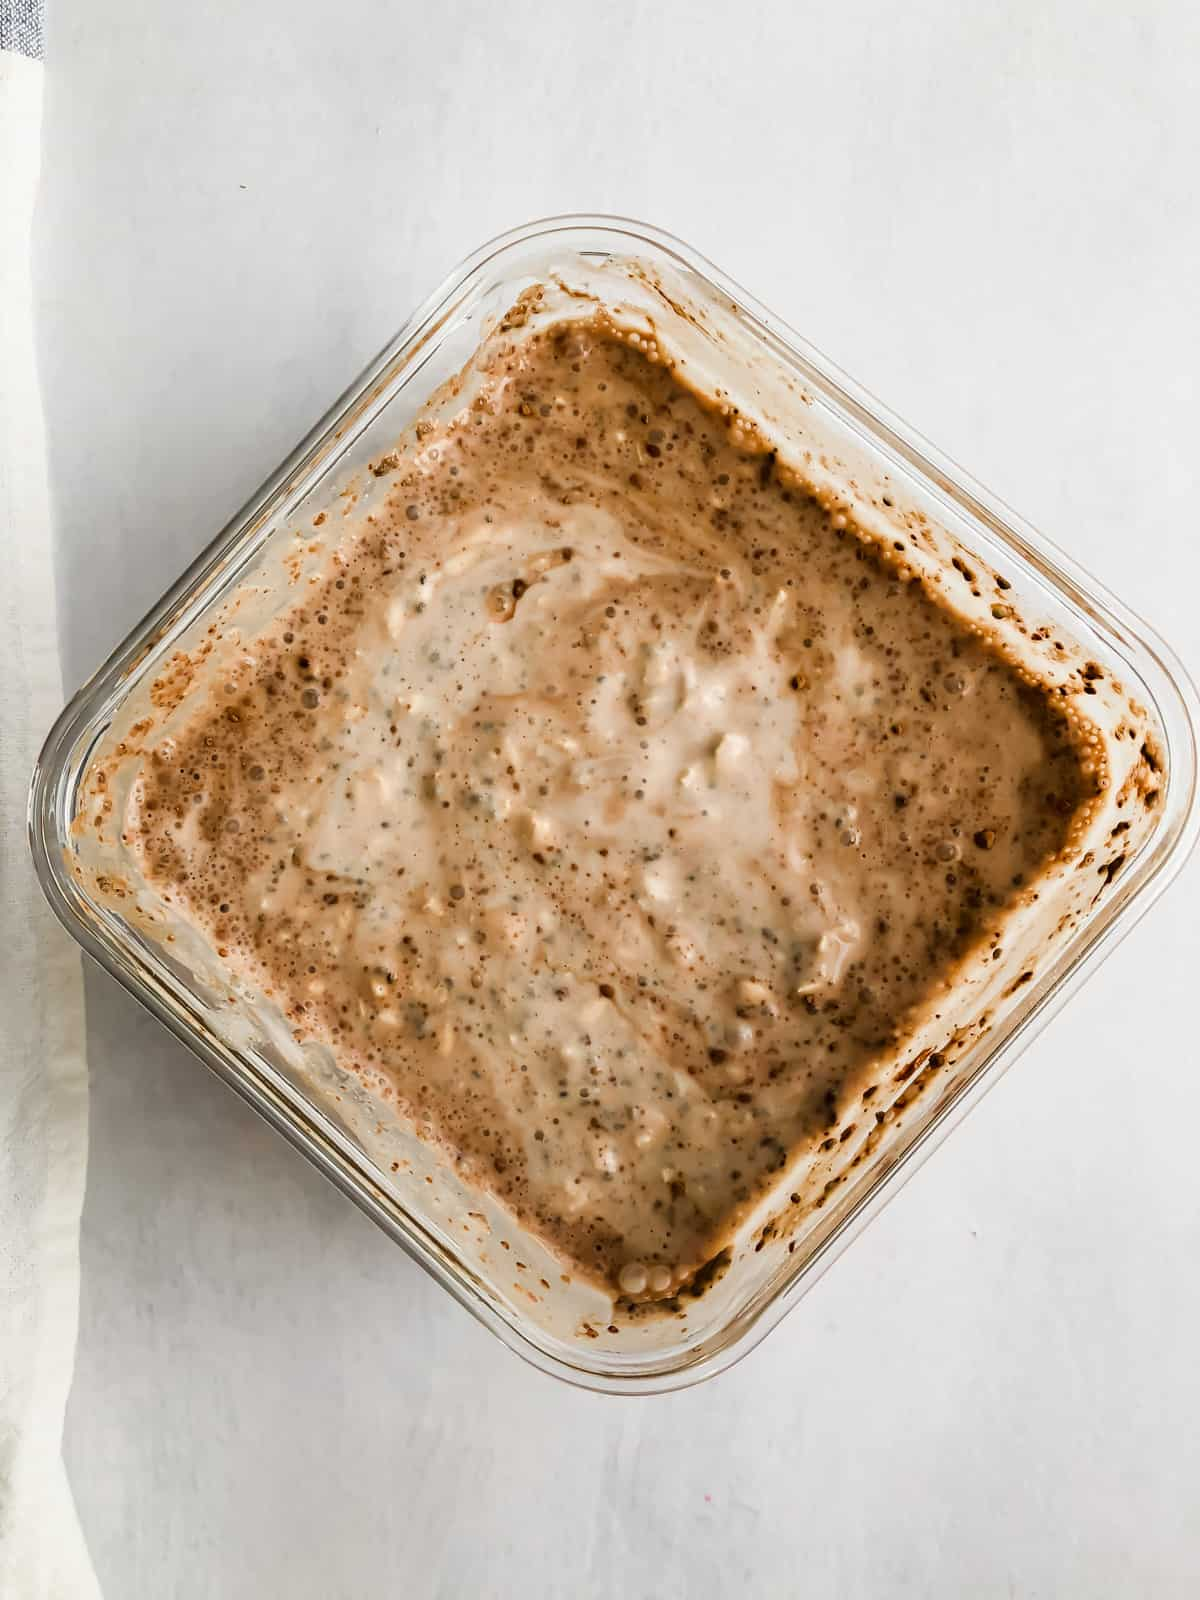 chocolate overnight oats stirred in a food storage container